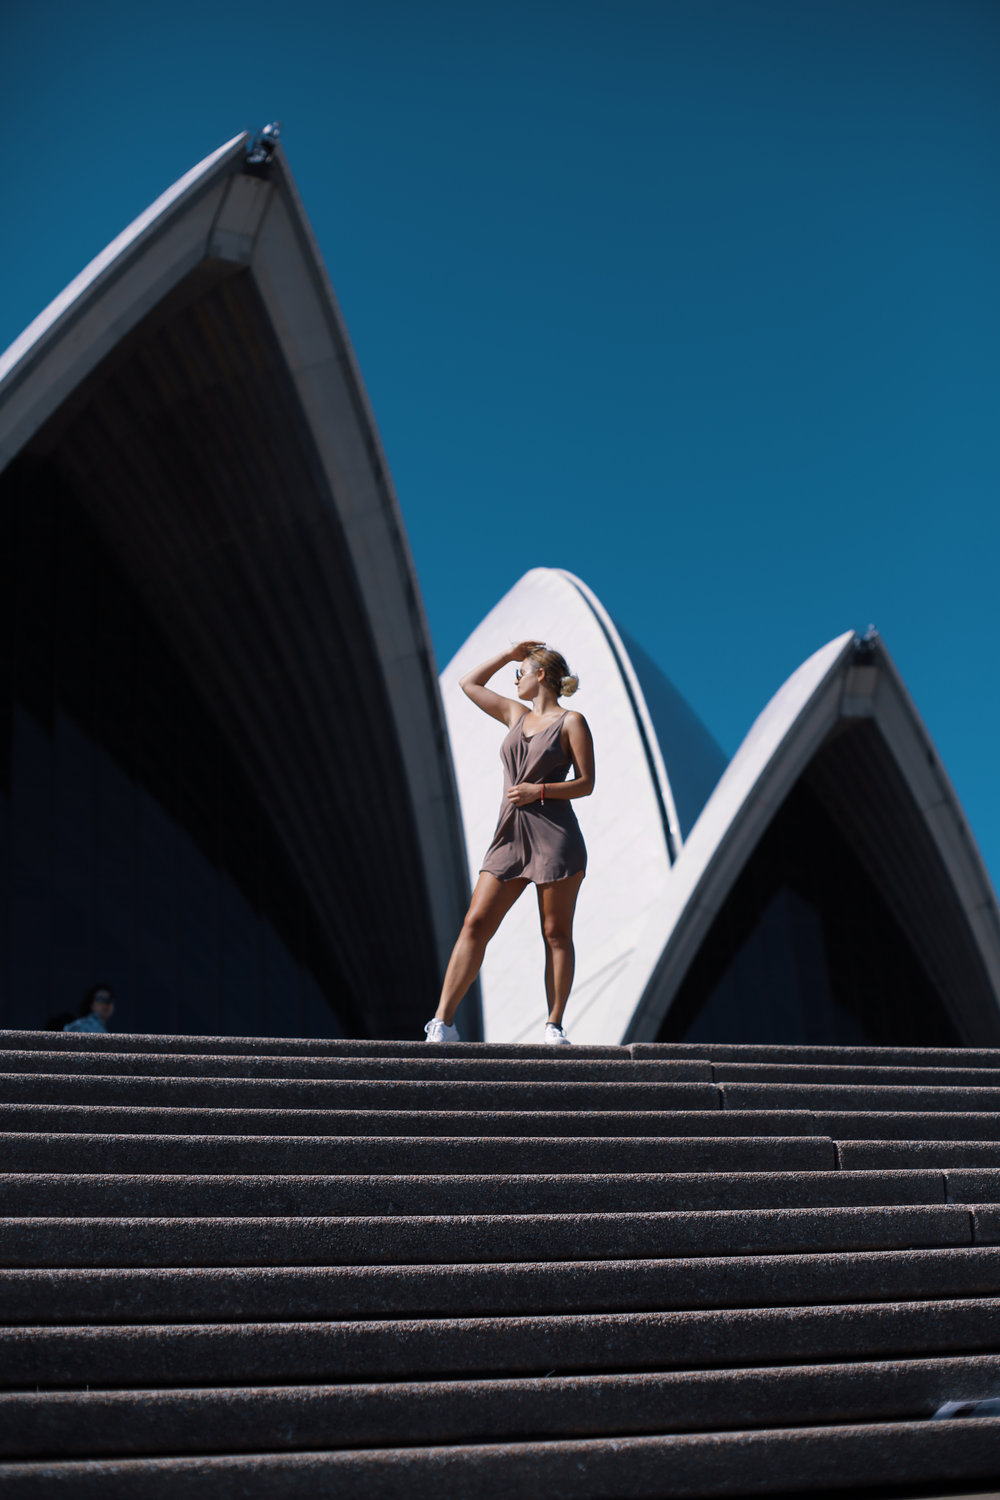 opera house in Sydney with a model